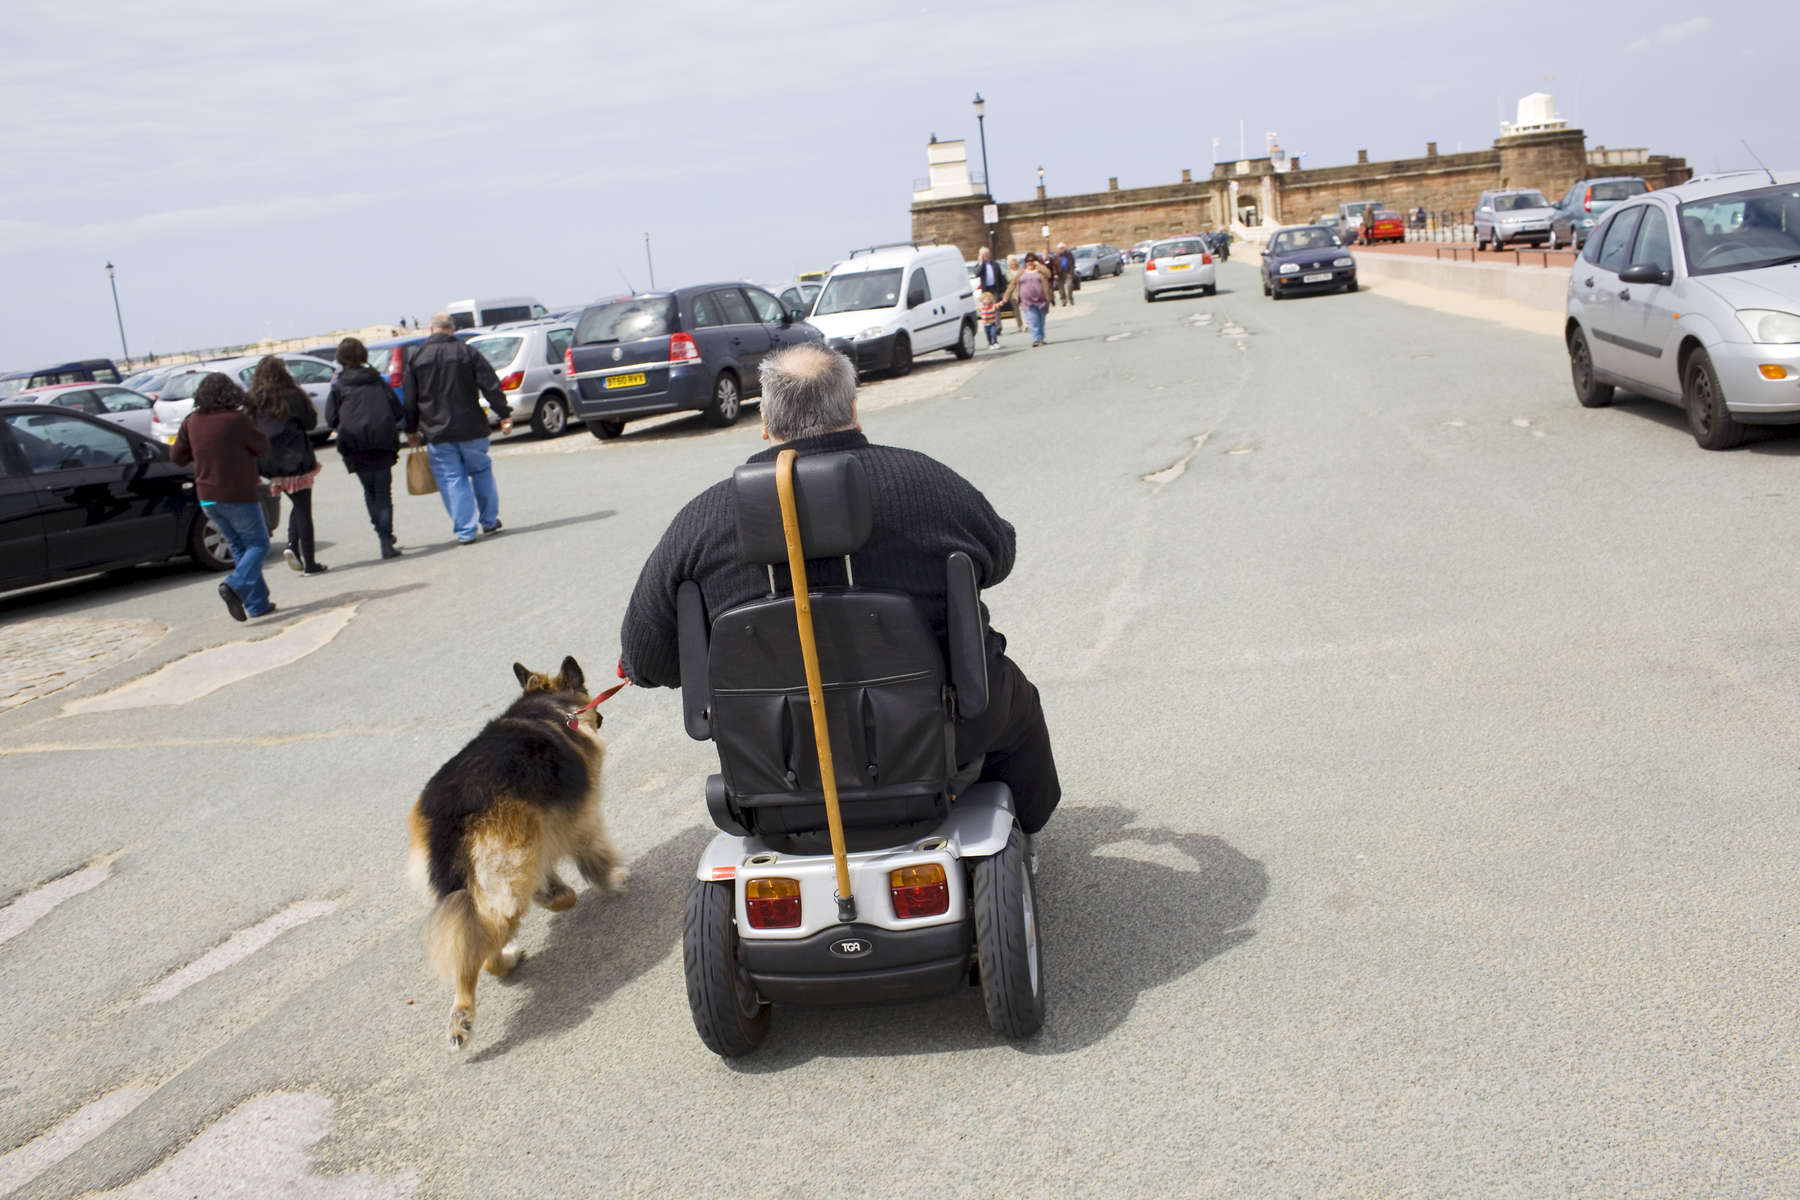 A man riding in a mobility scooter walks his Alsation Dog towards Fort Perch Rock. In 1986, world famous photographer Martin Parr published his book 'The Last Resort,' a set of photographs taken over three seasons 1983-85 in the Liverpool suburb of New Brighton. 25 years later, photographer and Parr fan, Peter Dench, went on a Bank Holiday pilgrimage to New Brighton to walk in Parr's footsteps and document what has changed or remained the same in the seaside town.